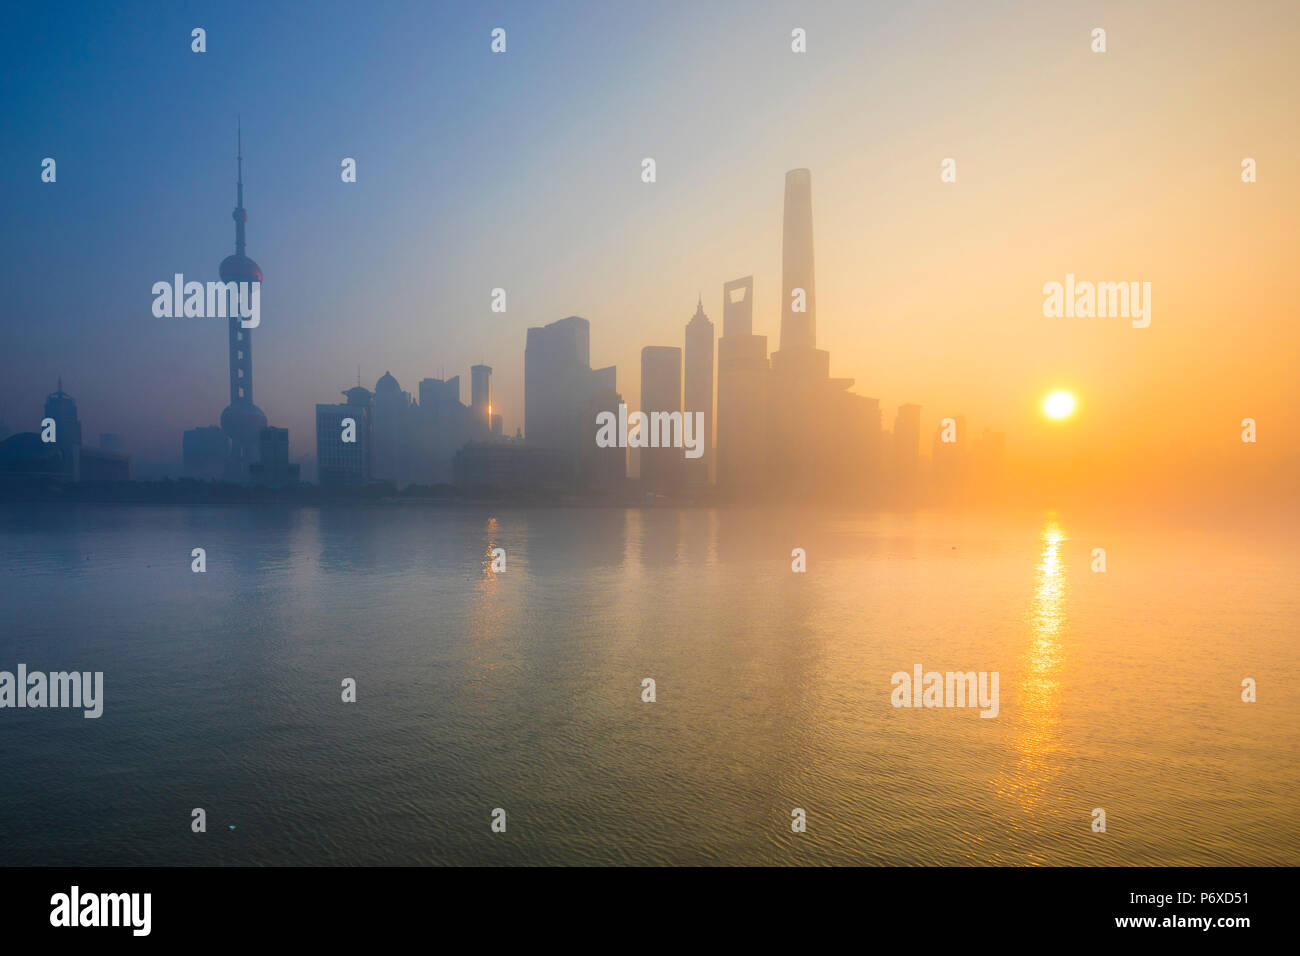 Skyline of Pudong from The Bund on a foggy November morning, Shanghai, China Stock Photo